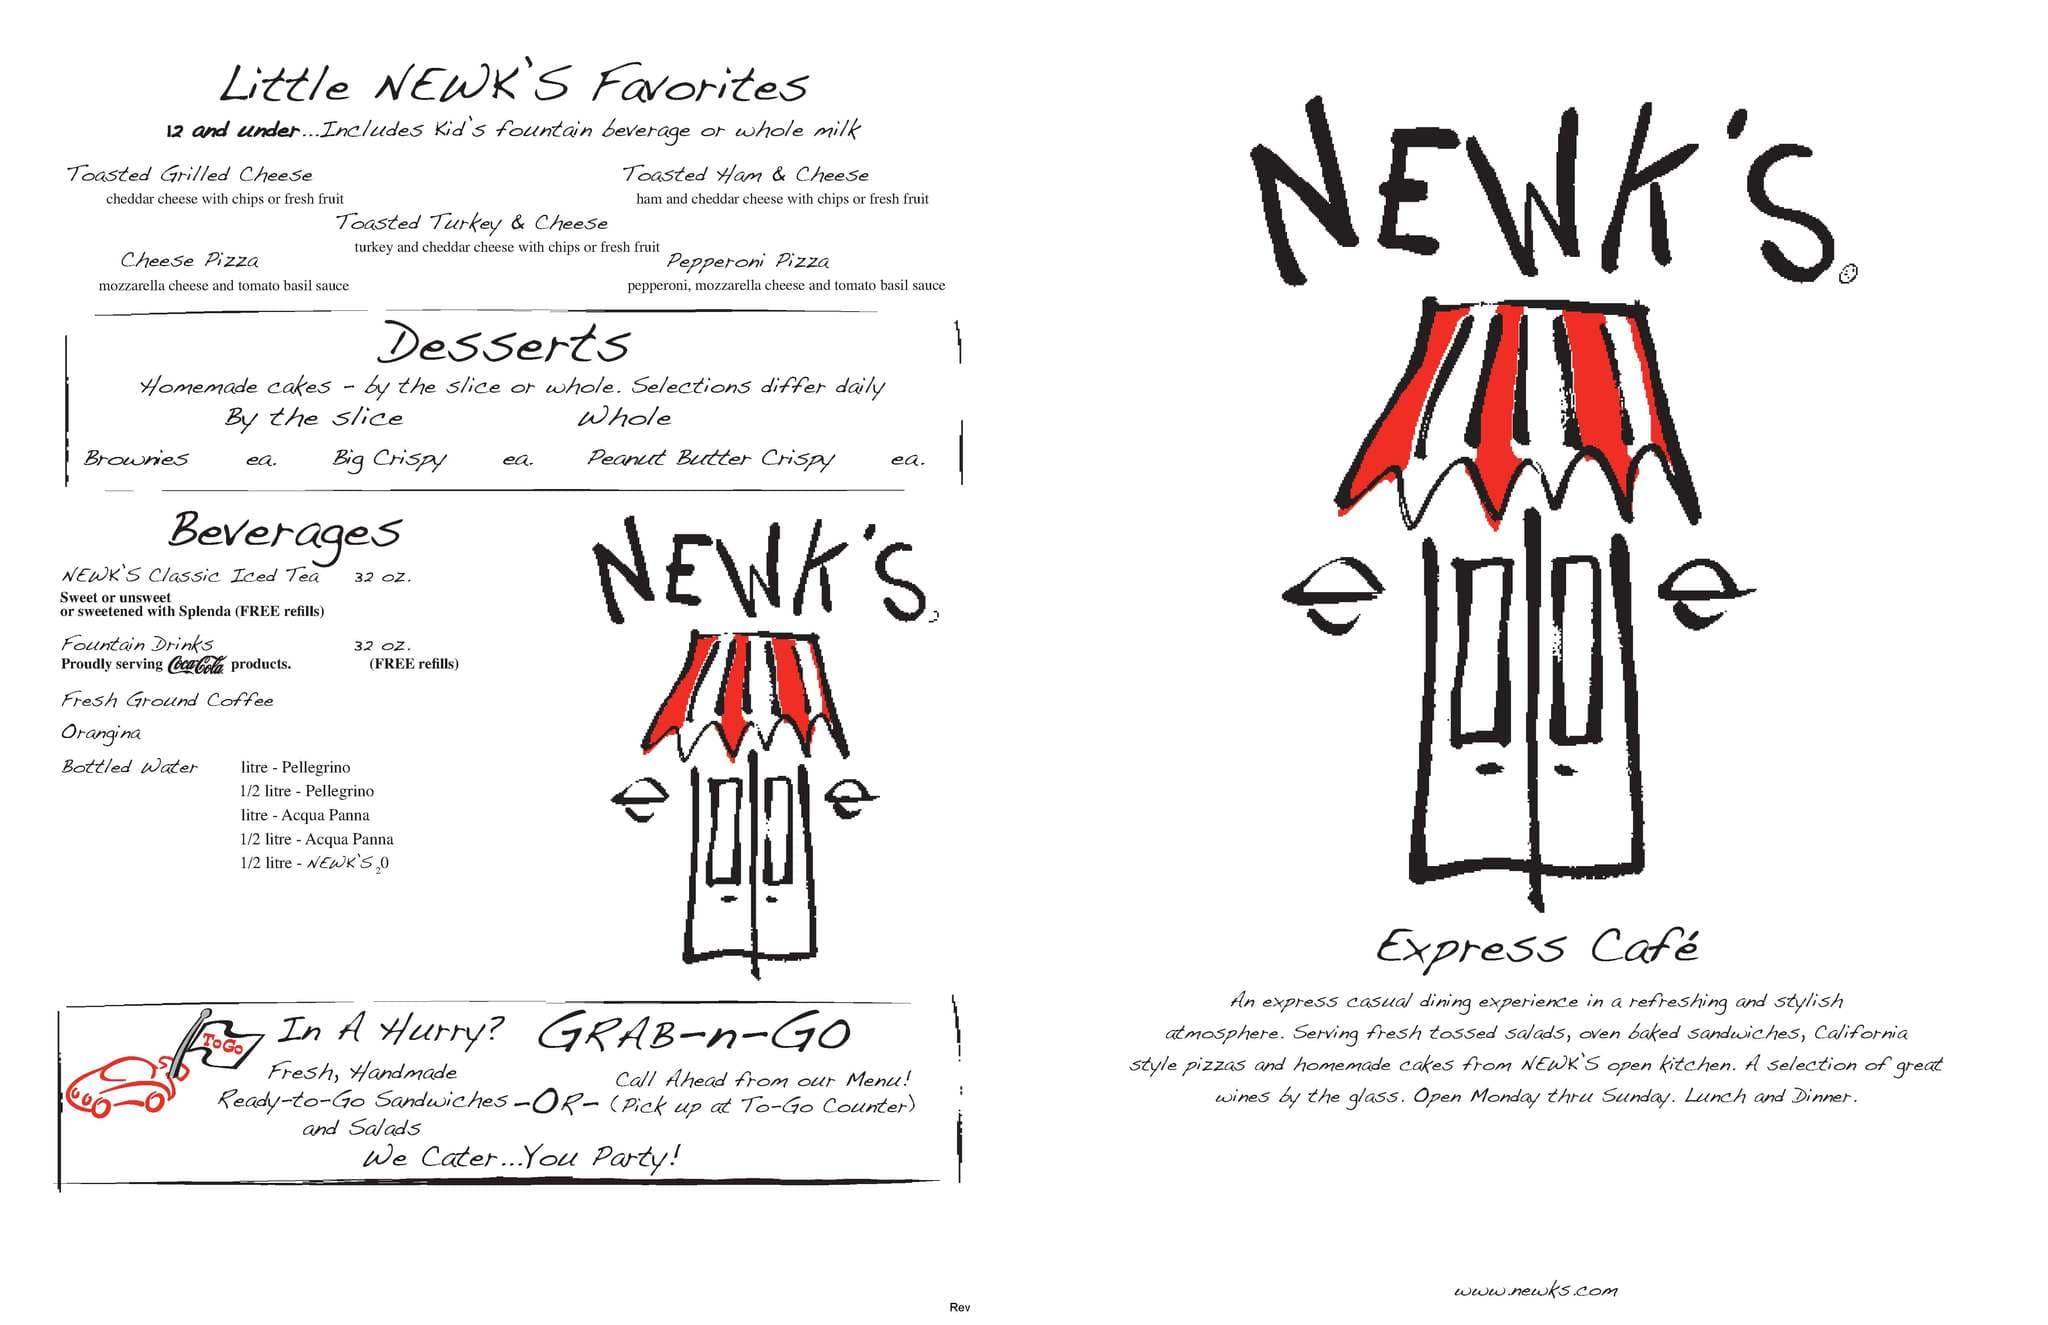 newk s express cafe menu menu for newk s express cafe southaven